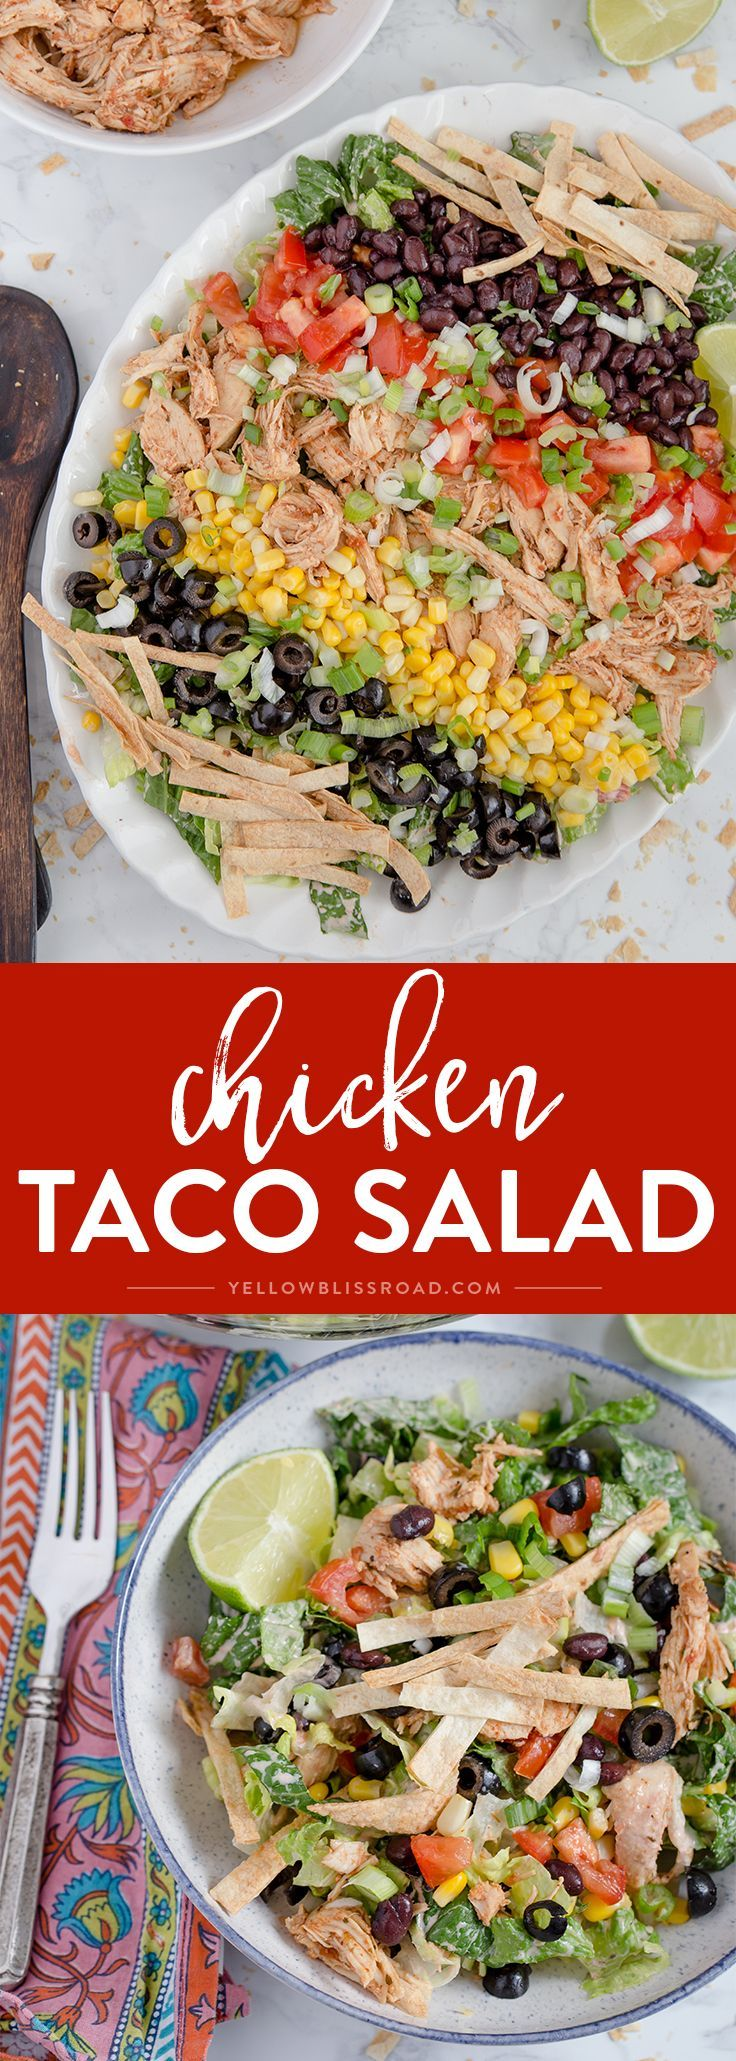 This Chicken Taco Salad is a delicious, quick and easy Mexican dinner that has all your favorite taco toppings with a spicy cream Salsa Ranch Dressing.